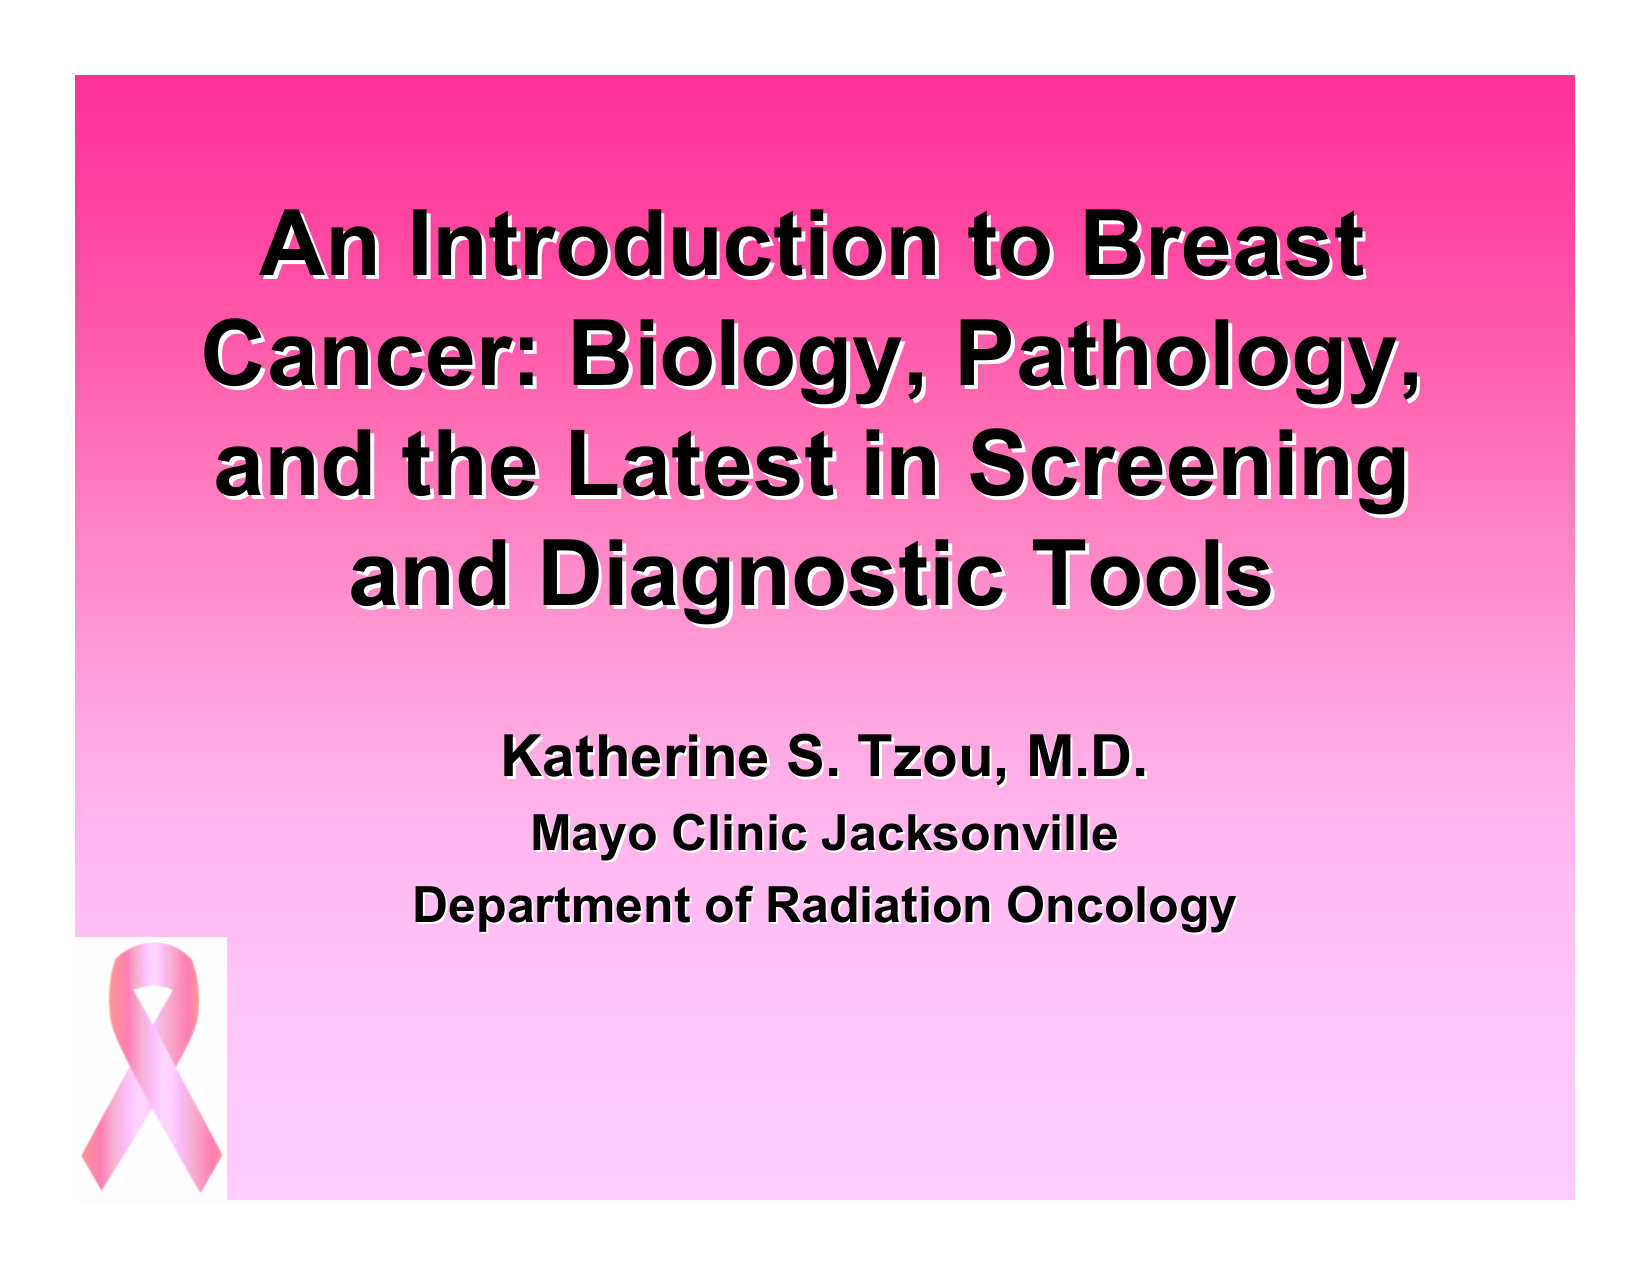 Breast Cancer Biology for the Radiation Oncologist